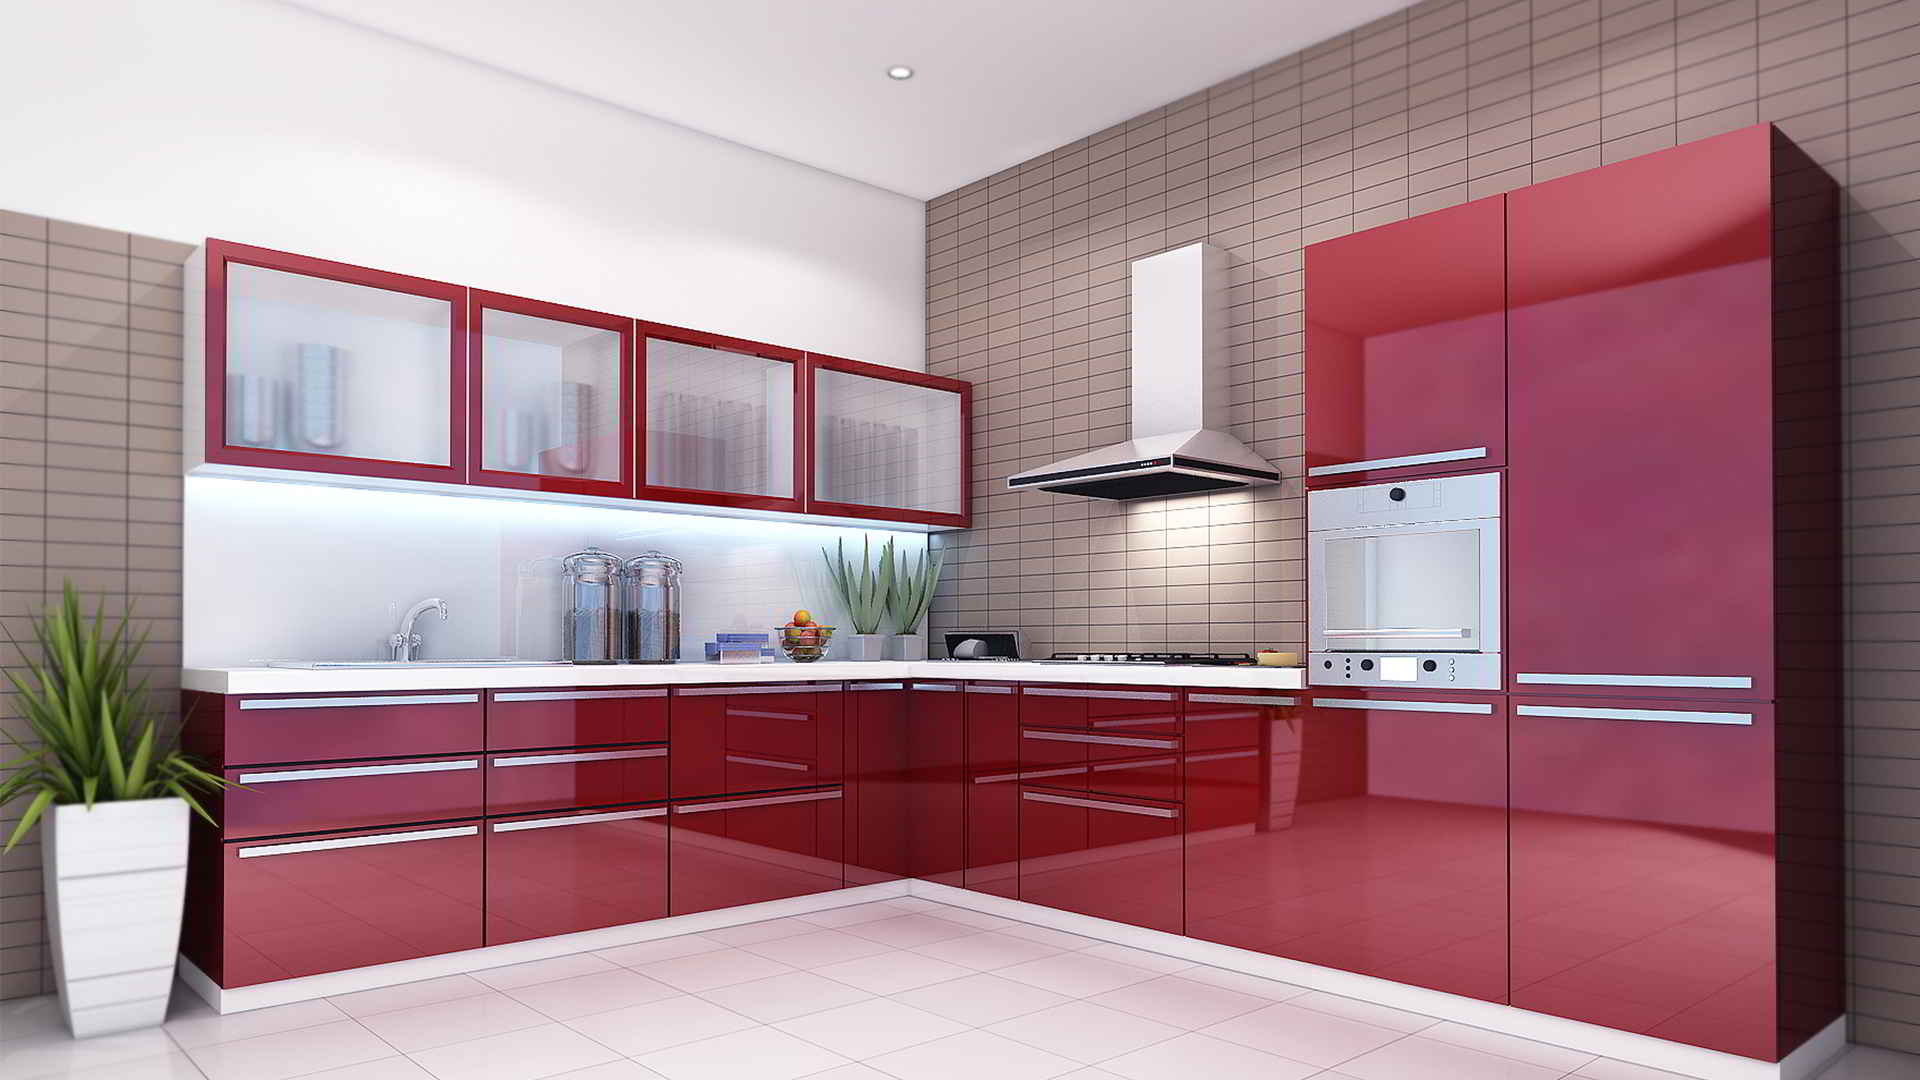 25 latest design ideas of modular kitchen pictures images catalogue Kitchen design price list